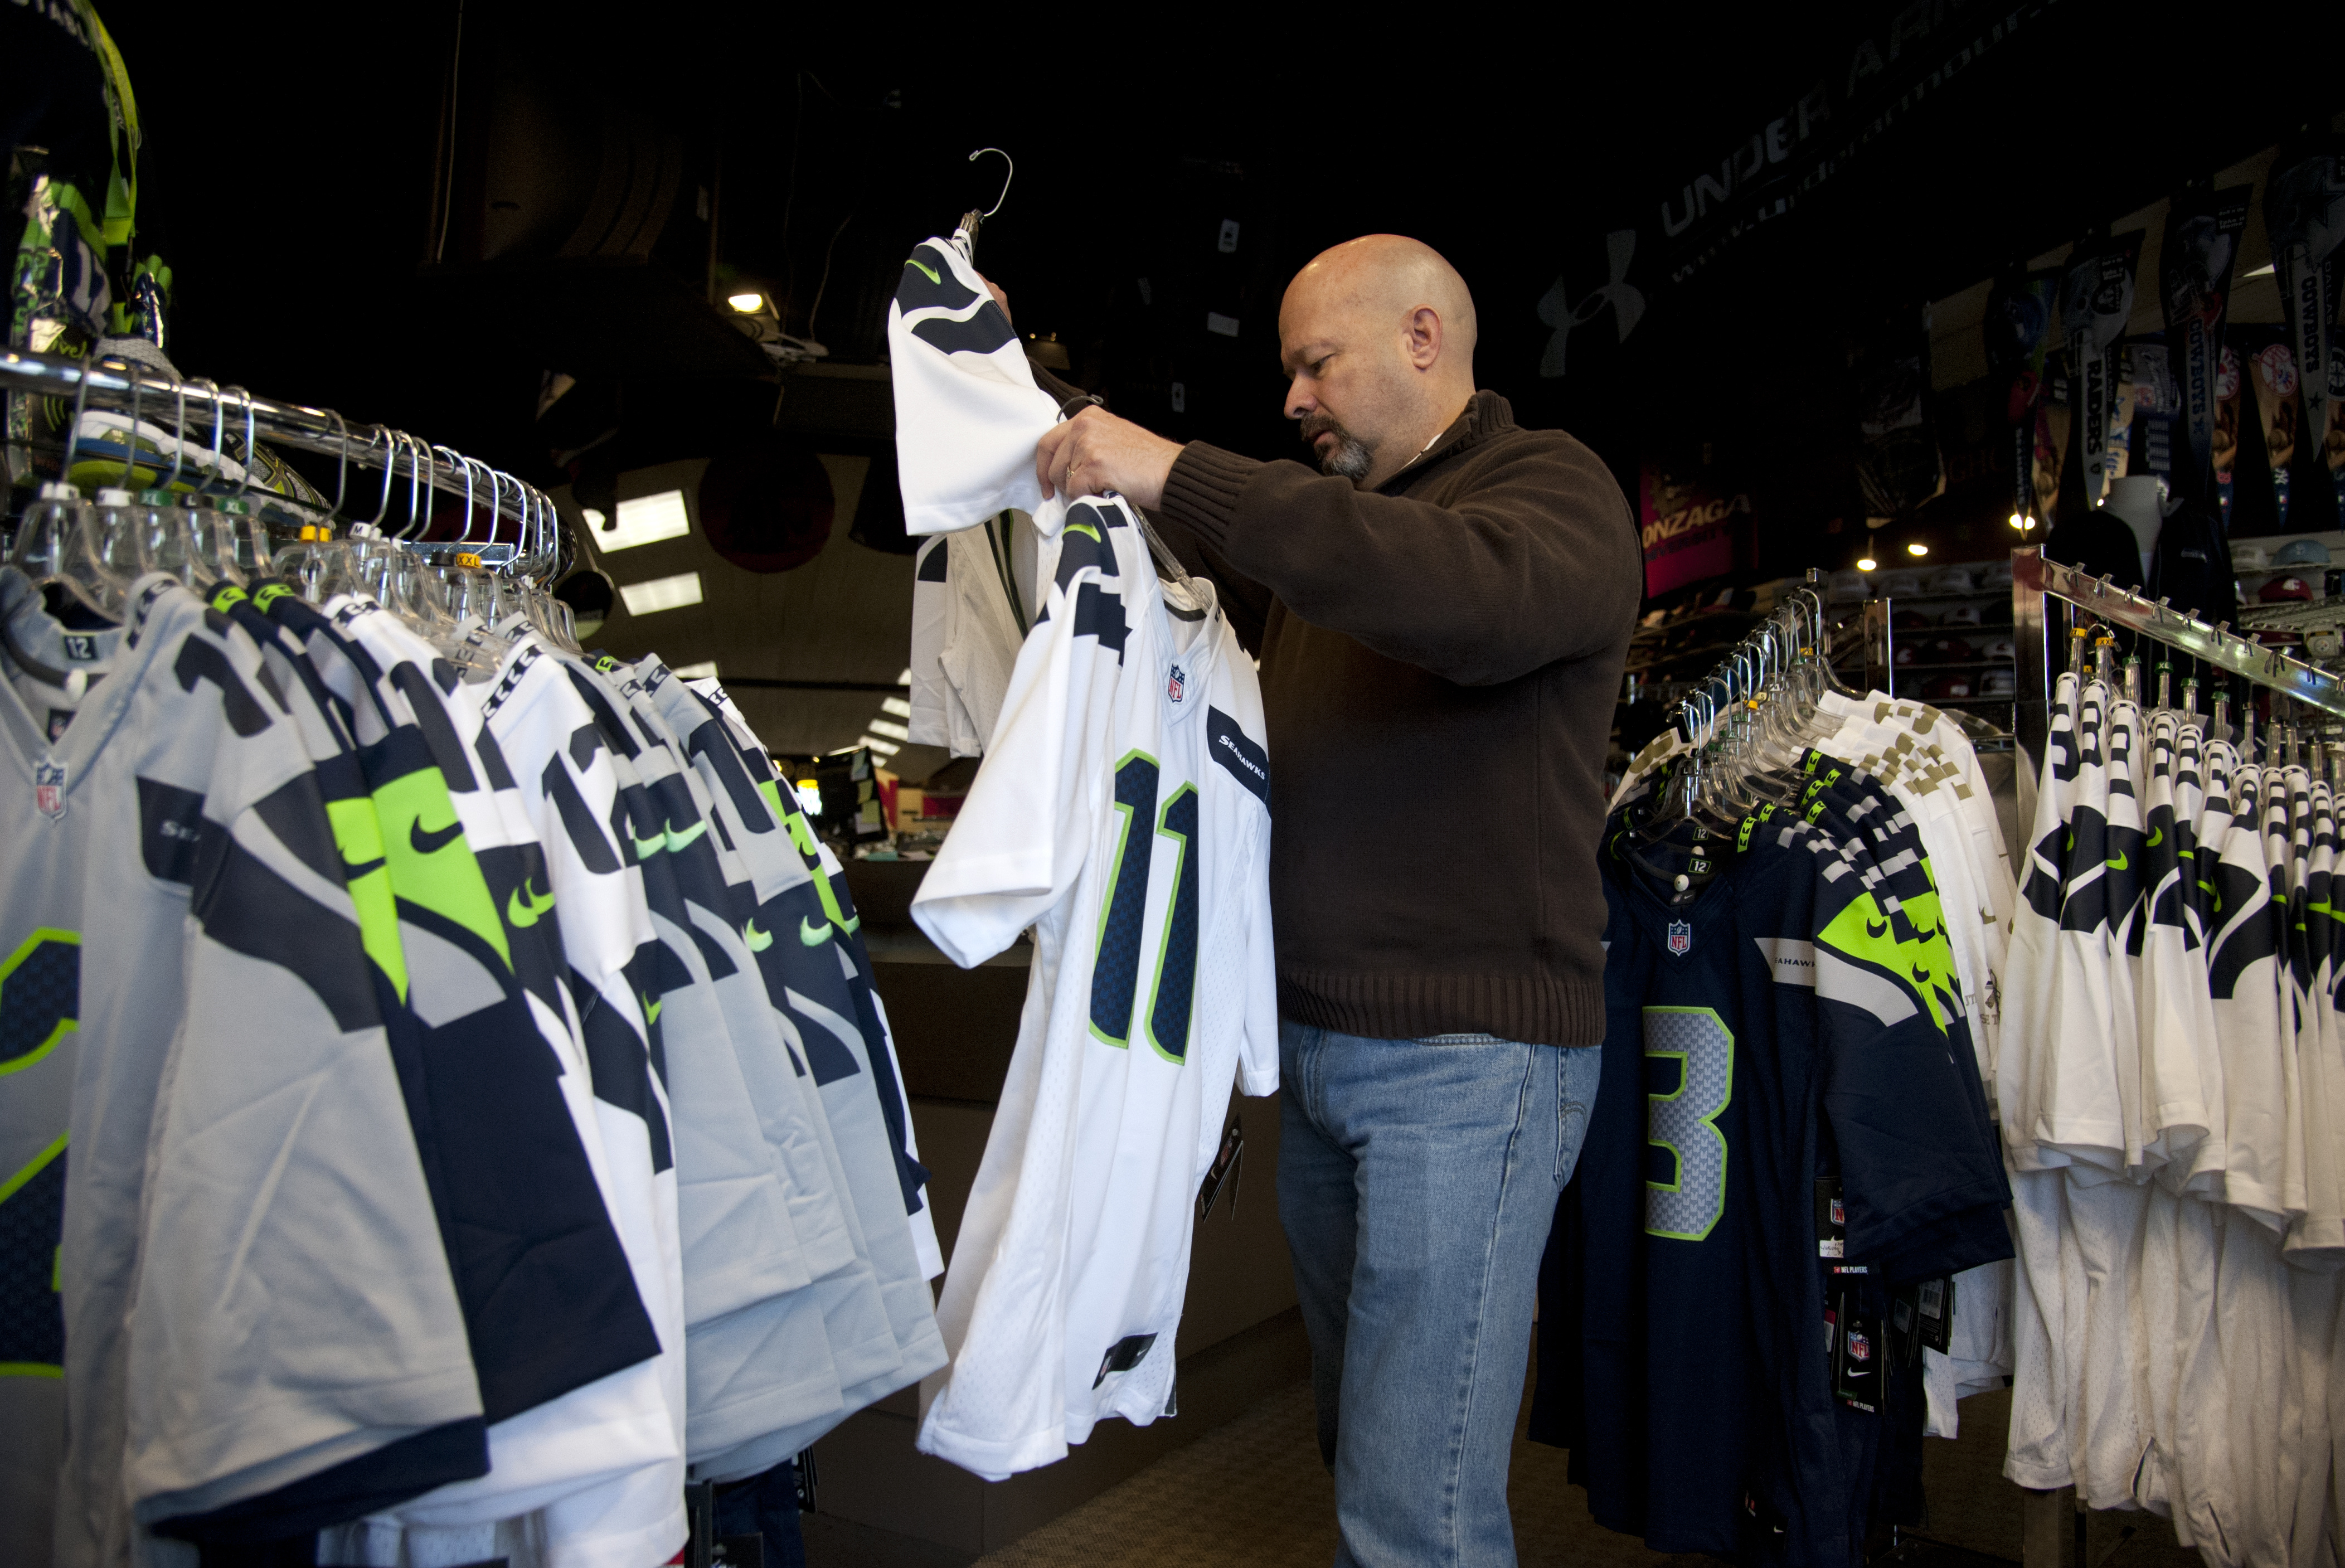 reputable site f3a32 068b8 Seahawks in Super Bowl would be big score for business | The ...